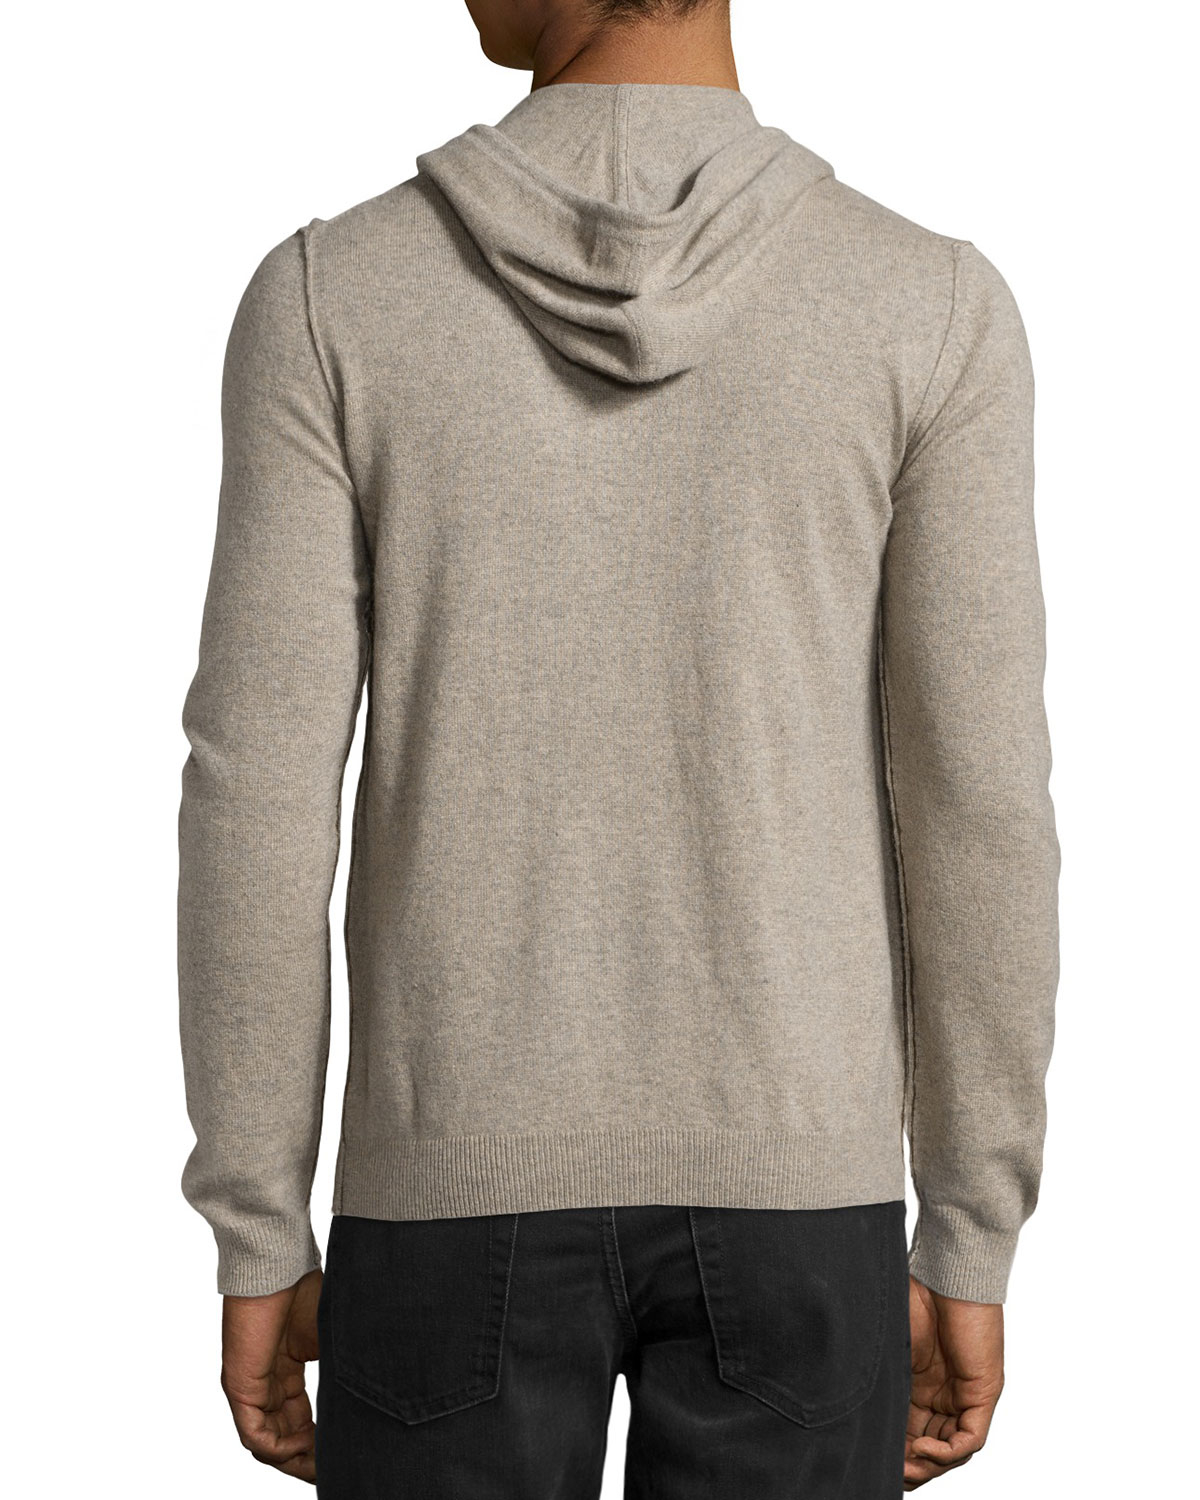 neiman marcus cashmere pullover hoodie in natural for men. Black Bedroom Furniture Sets. Home Design Ideas